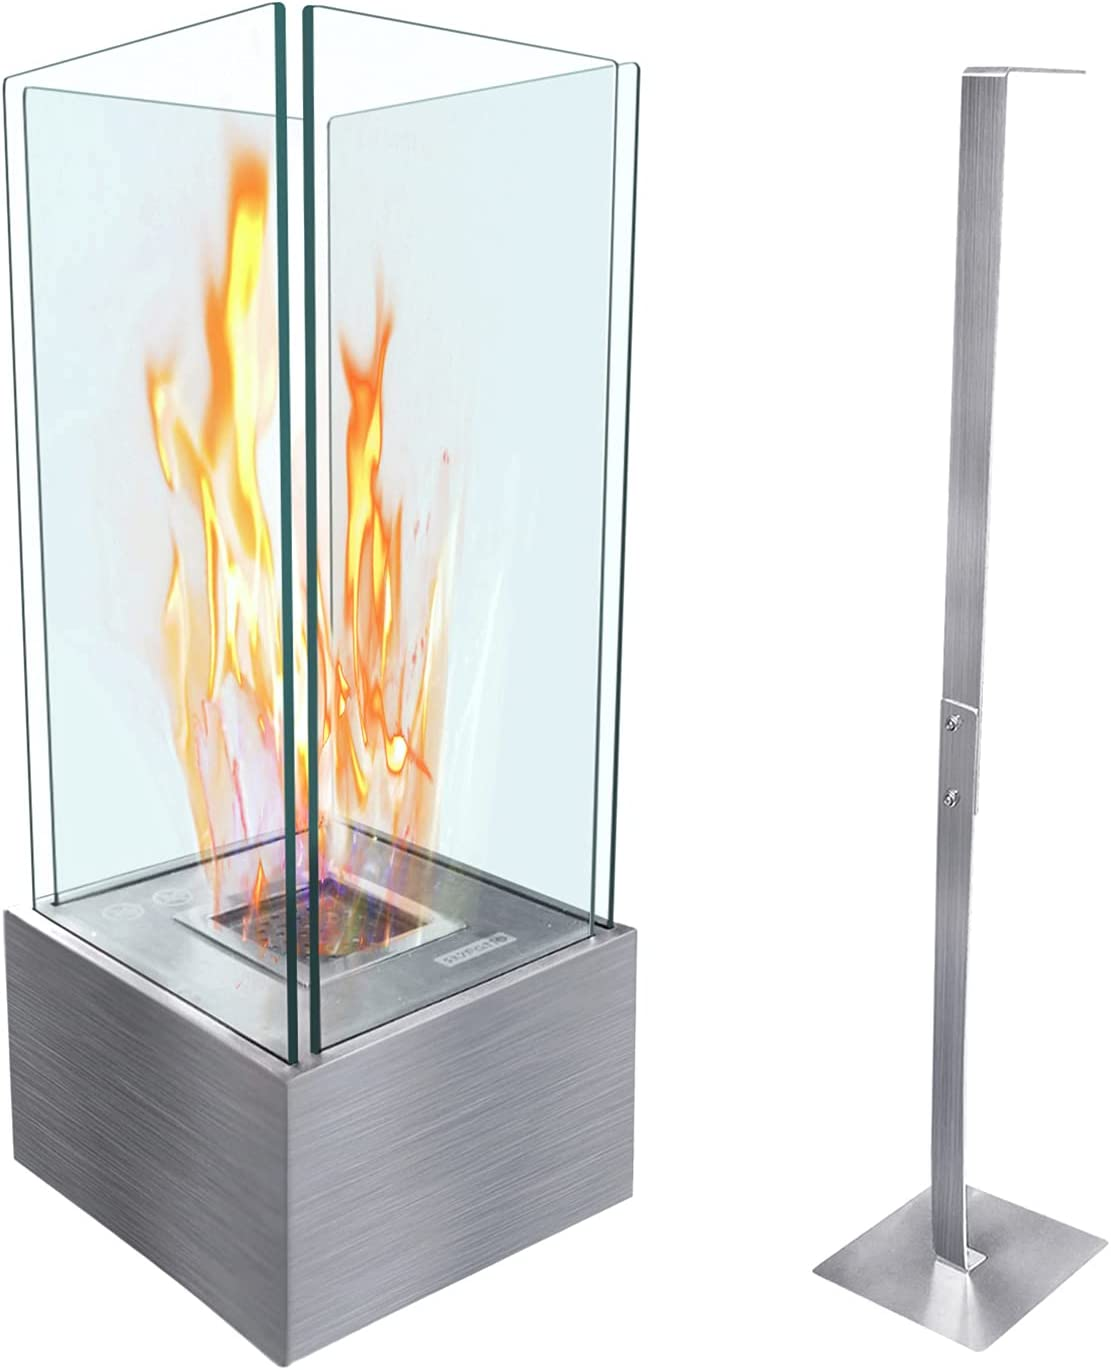 Cheap mail order specialty shop store ATR ART TO REAL Bio Freestanding Ethanol Ventless Fireplace